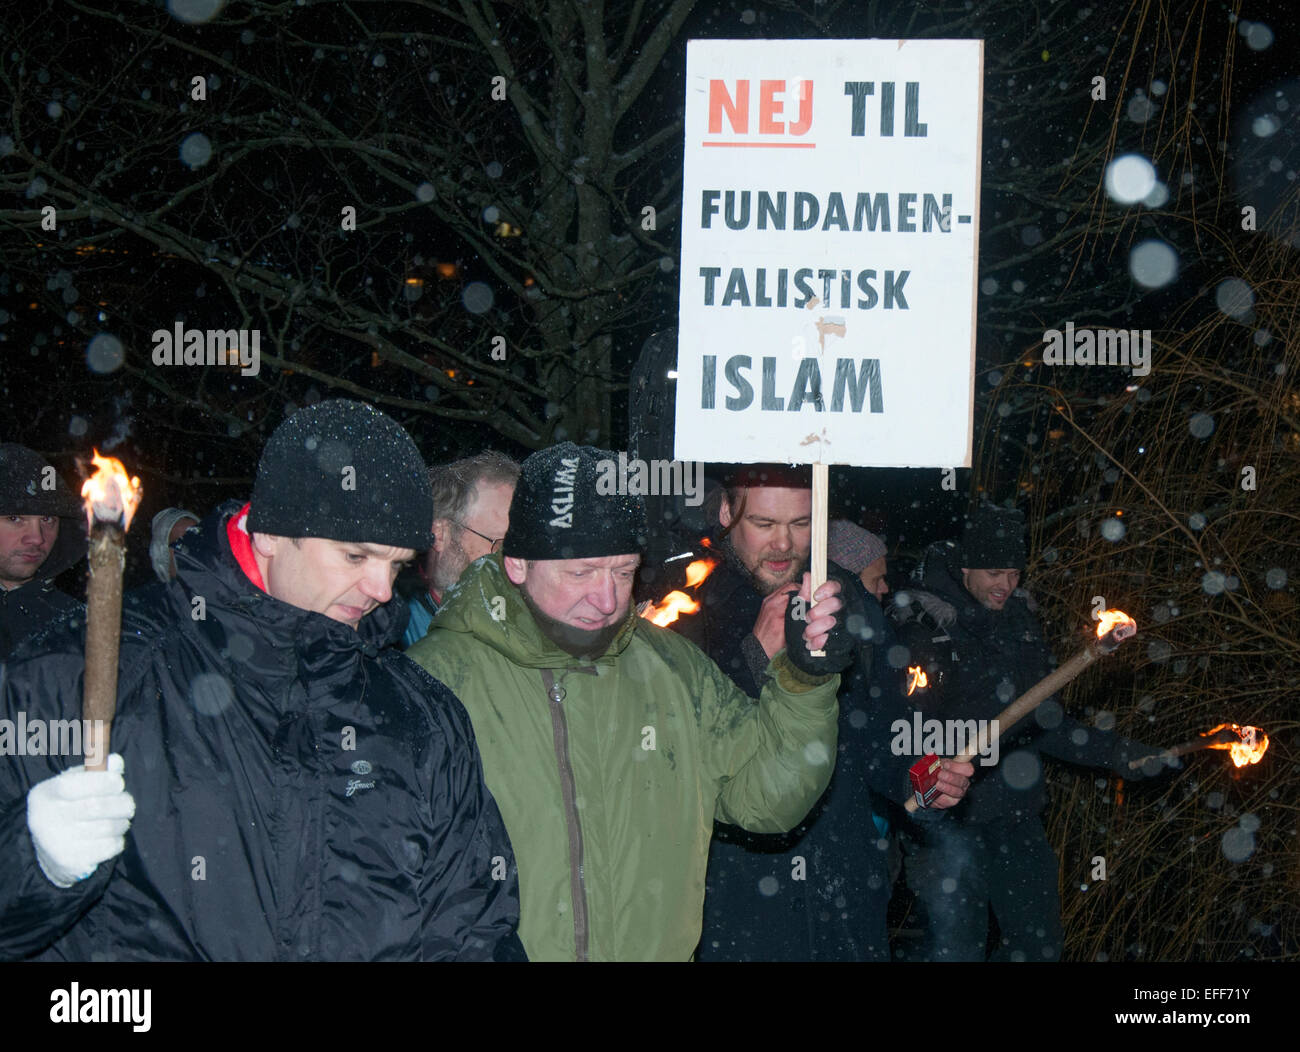 Danish activists brandishing torches took to the streets of Copenhagen on February 2nd 2015 marching against radical - Stock Image